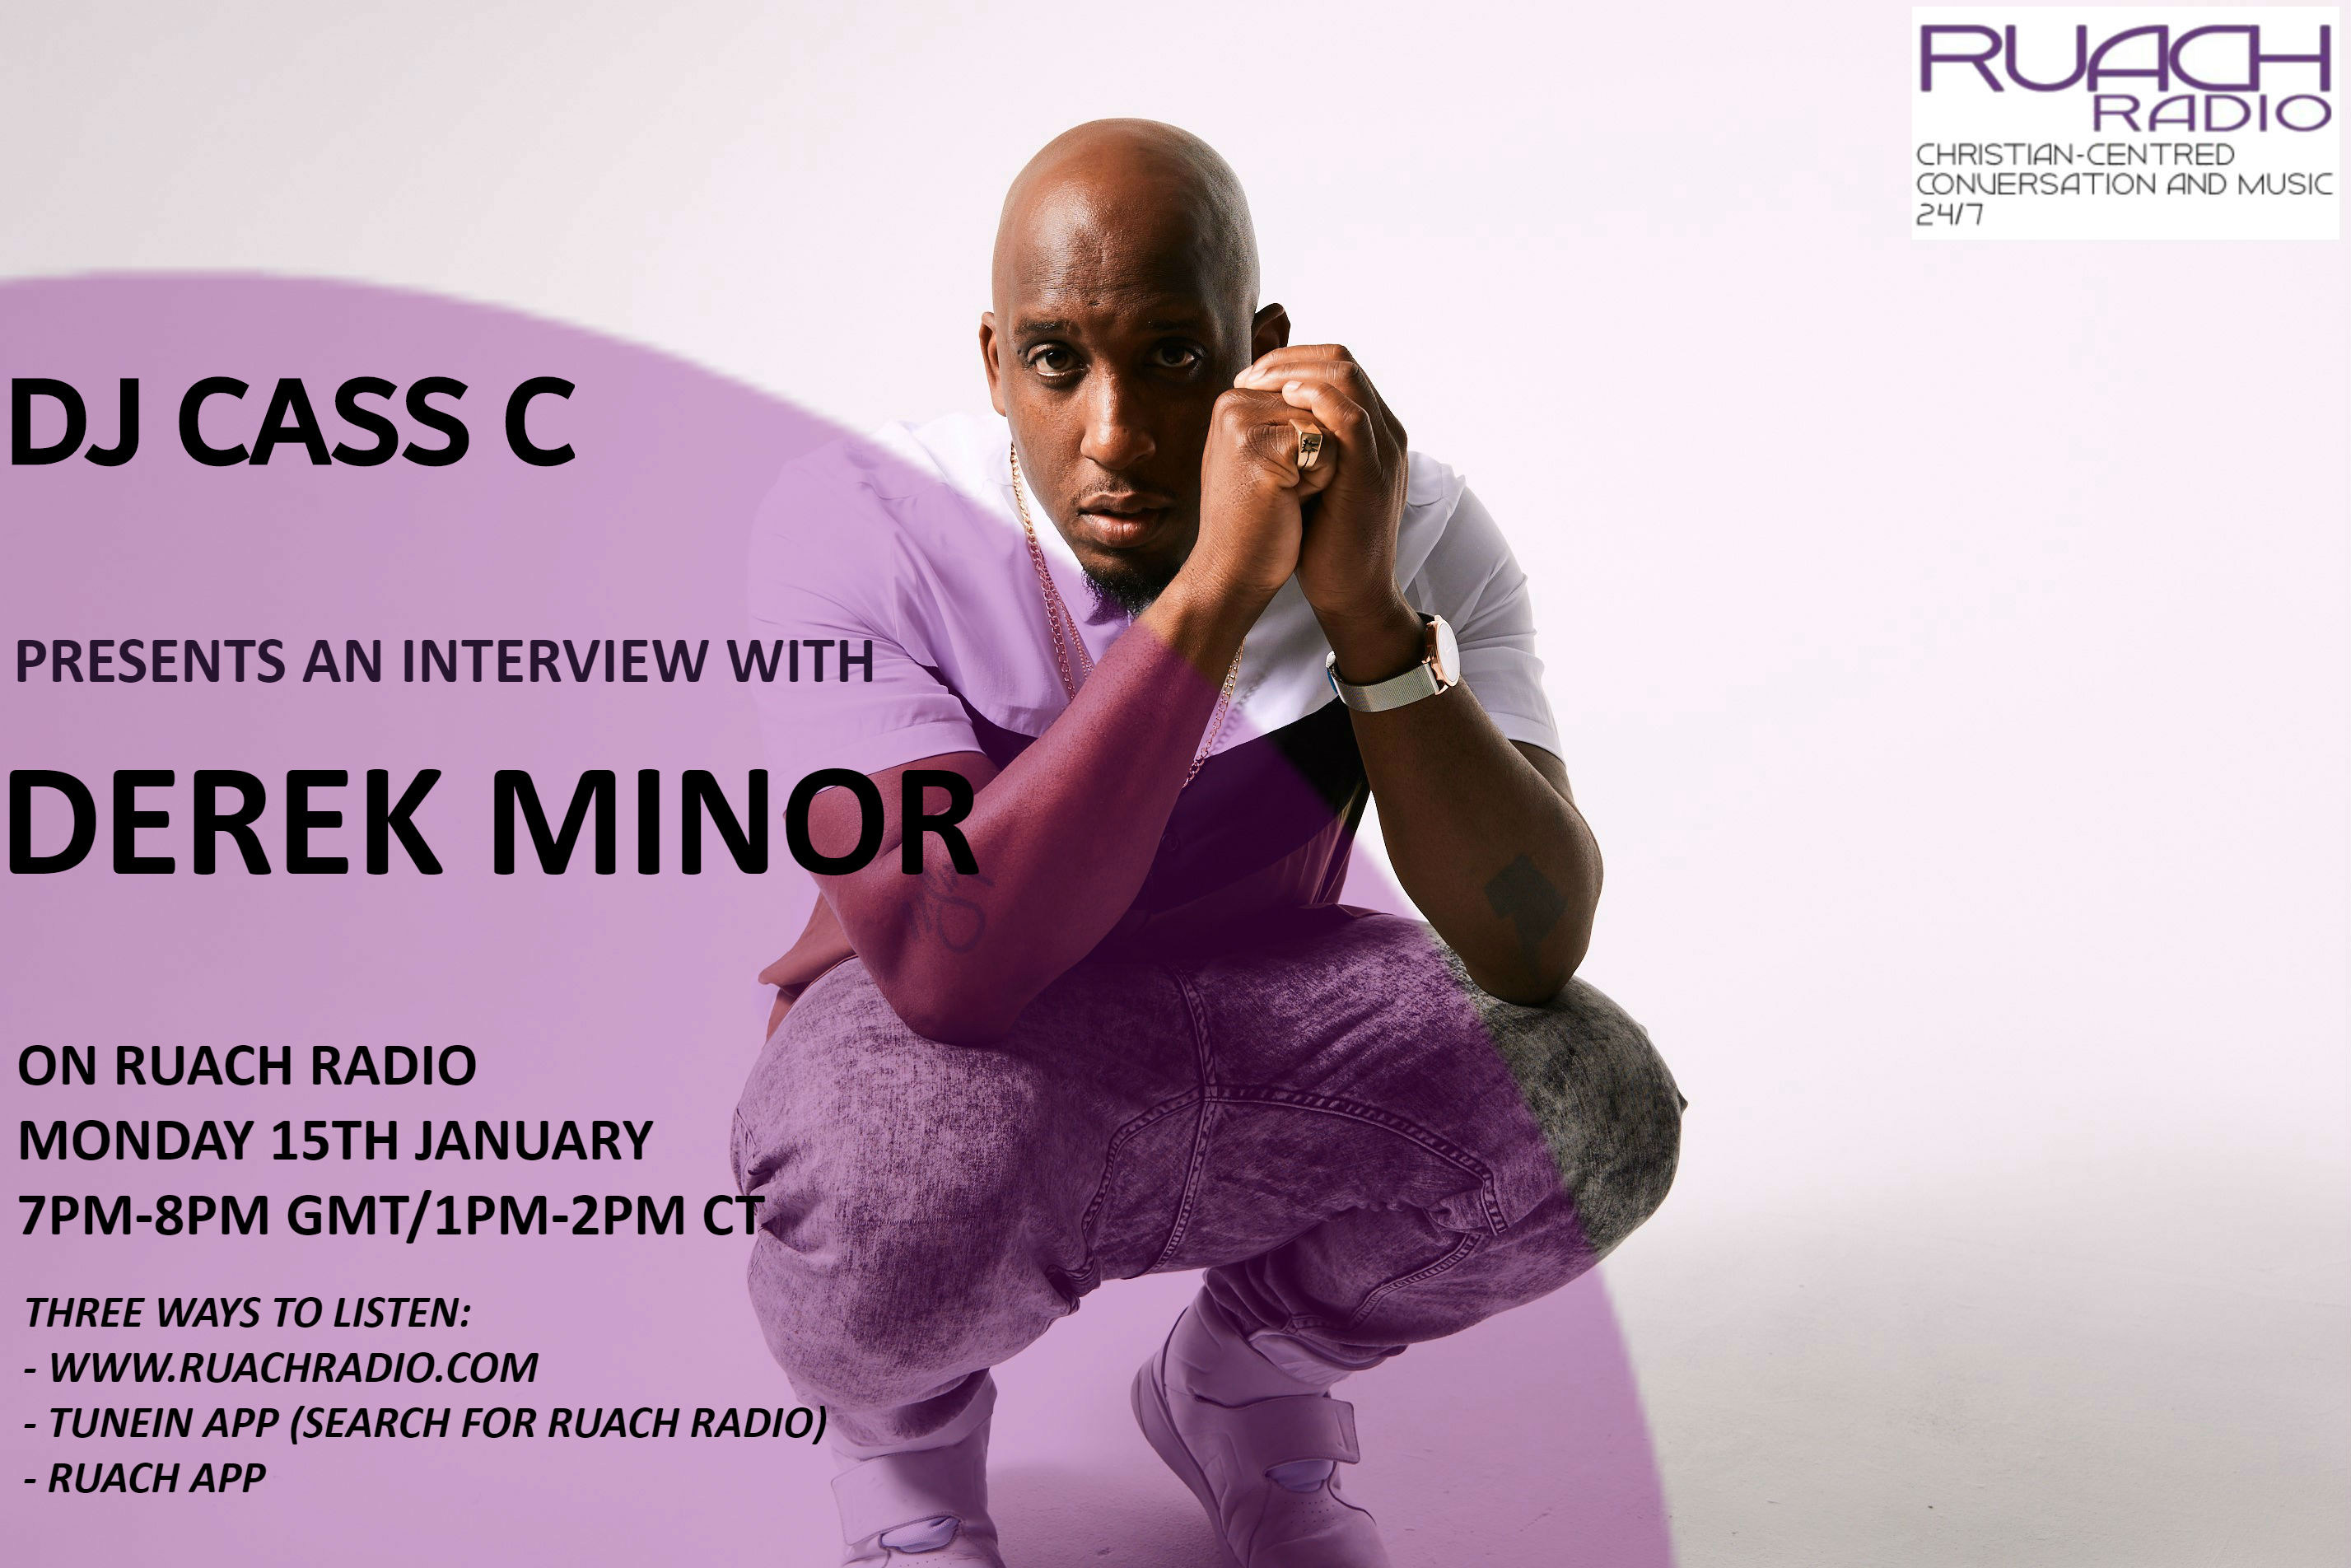 Derek Minor interview promo 15 Jan 18